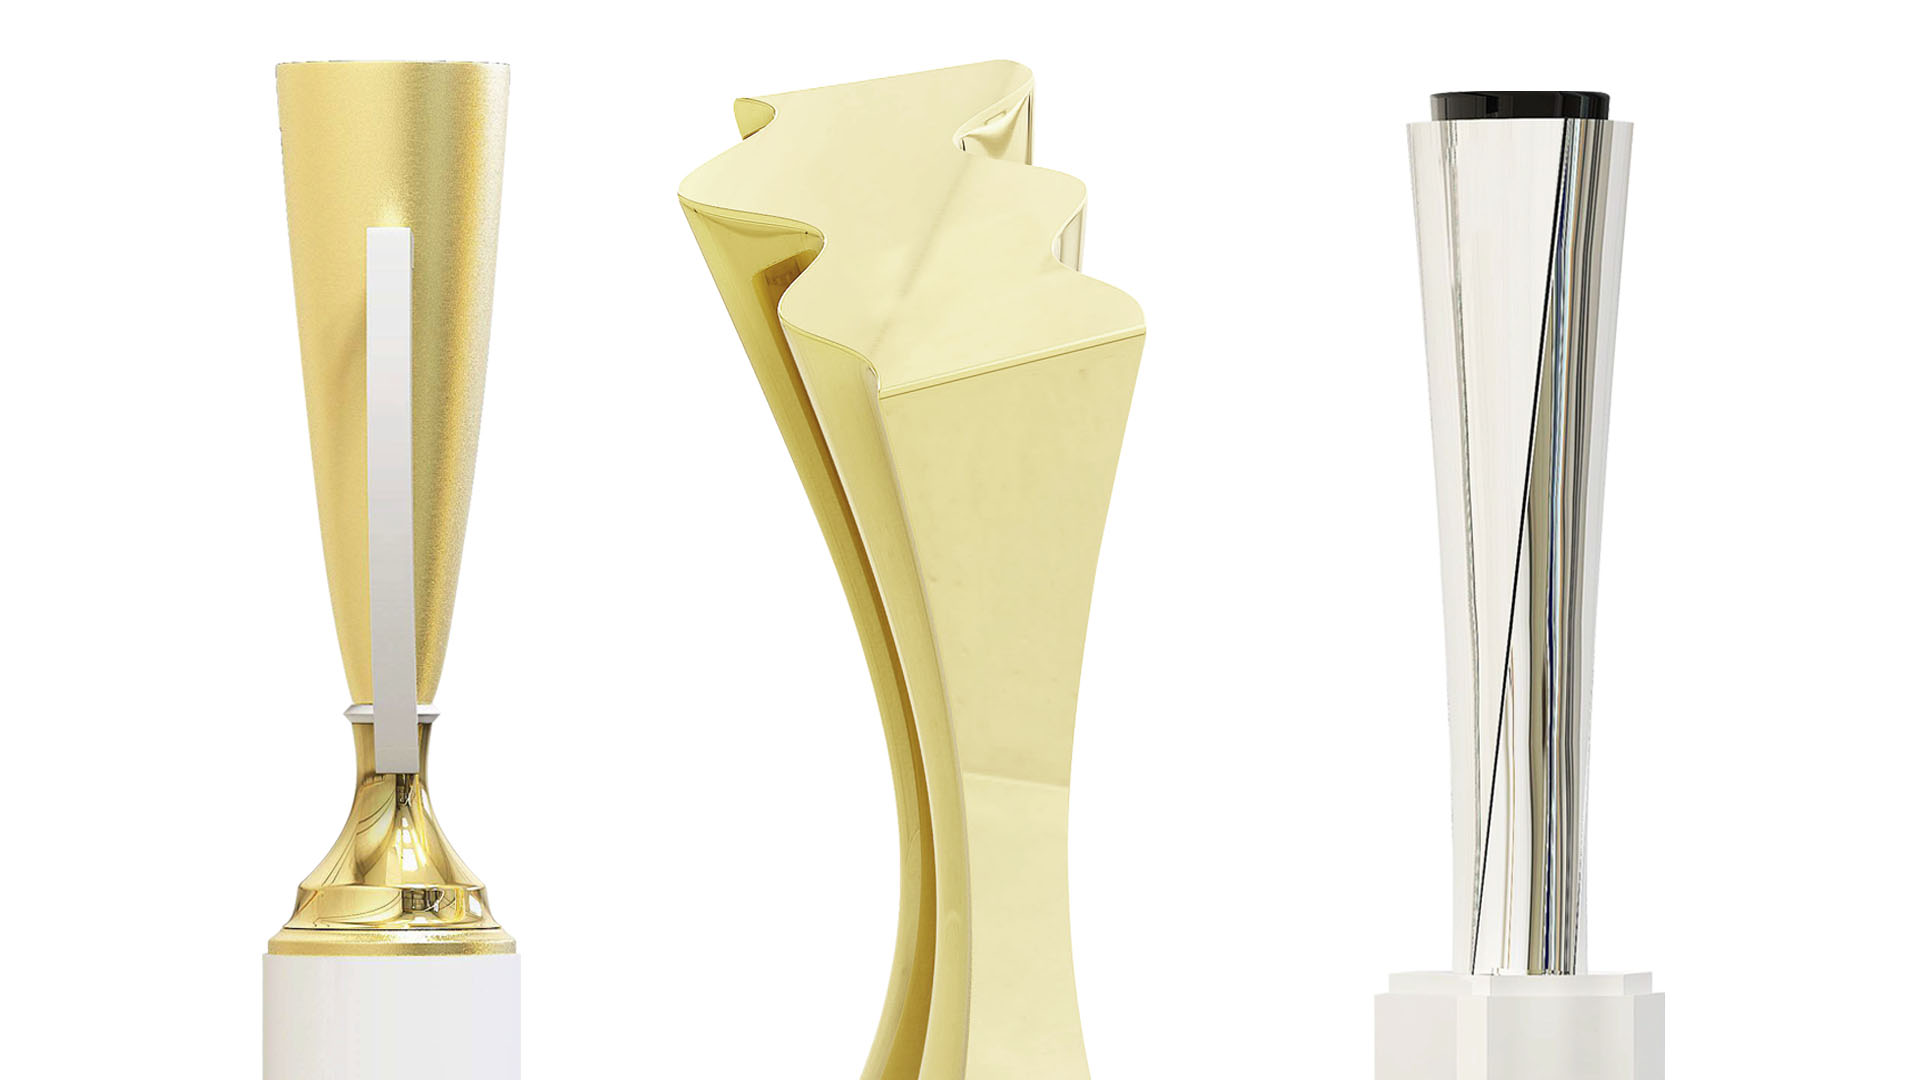 Modern metal trophies designed by Society Awards